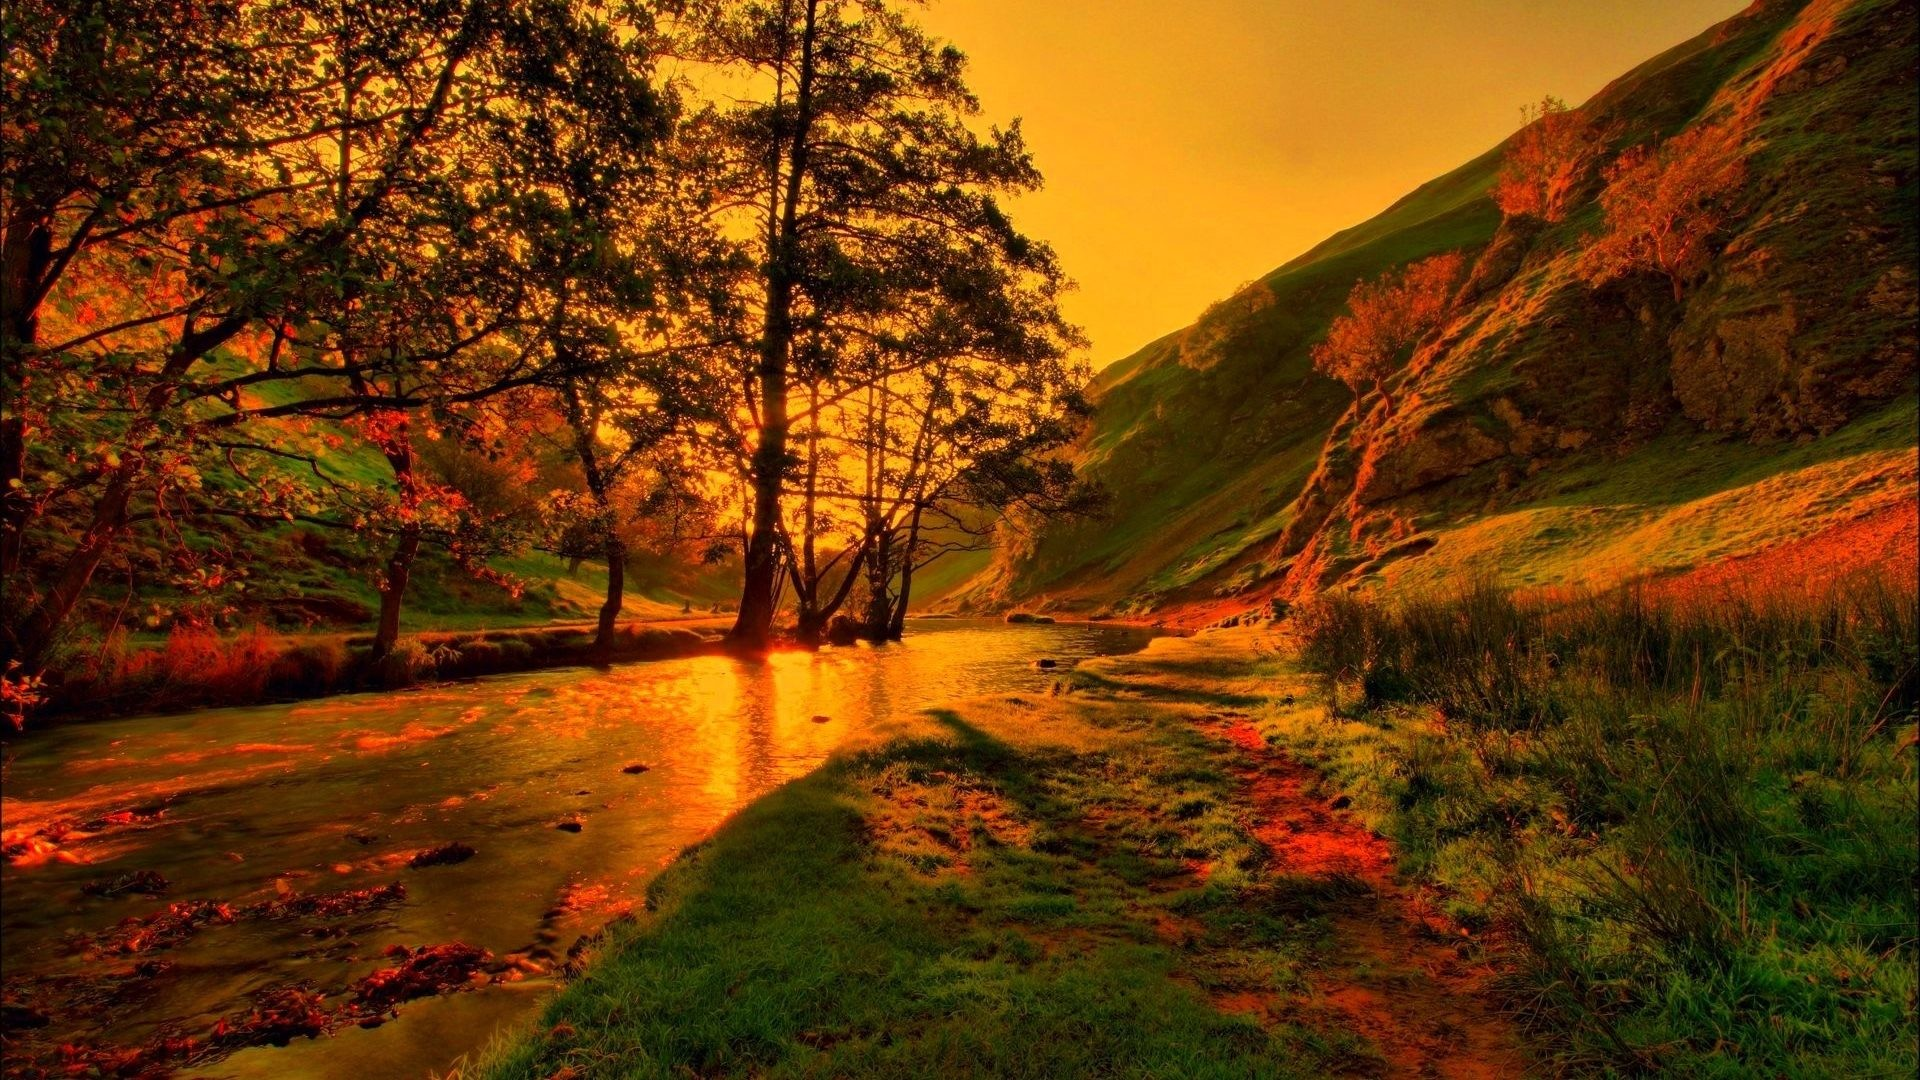 Autumn Landscape Wallpaper (69+ Images